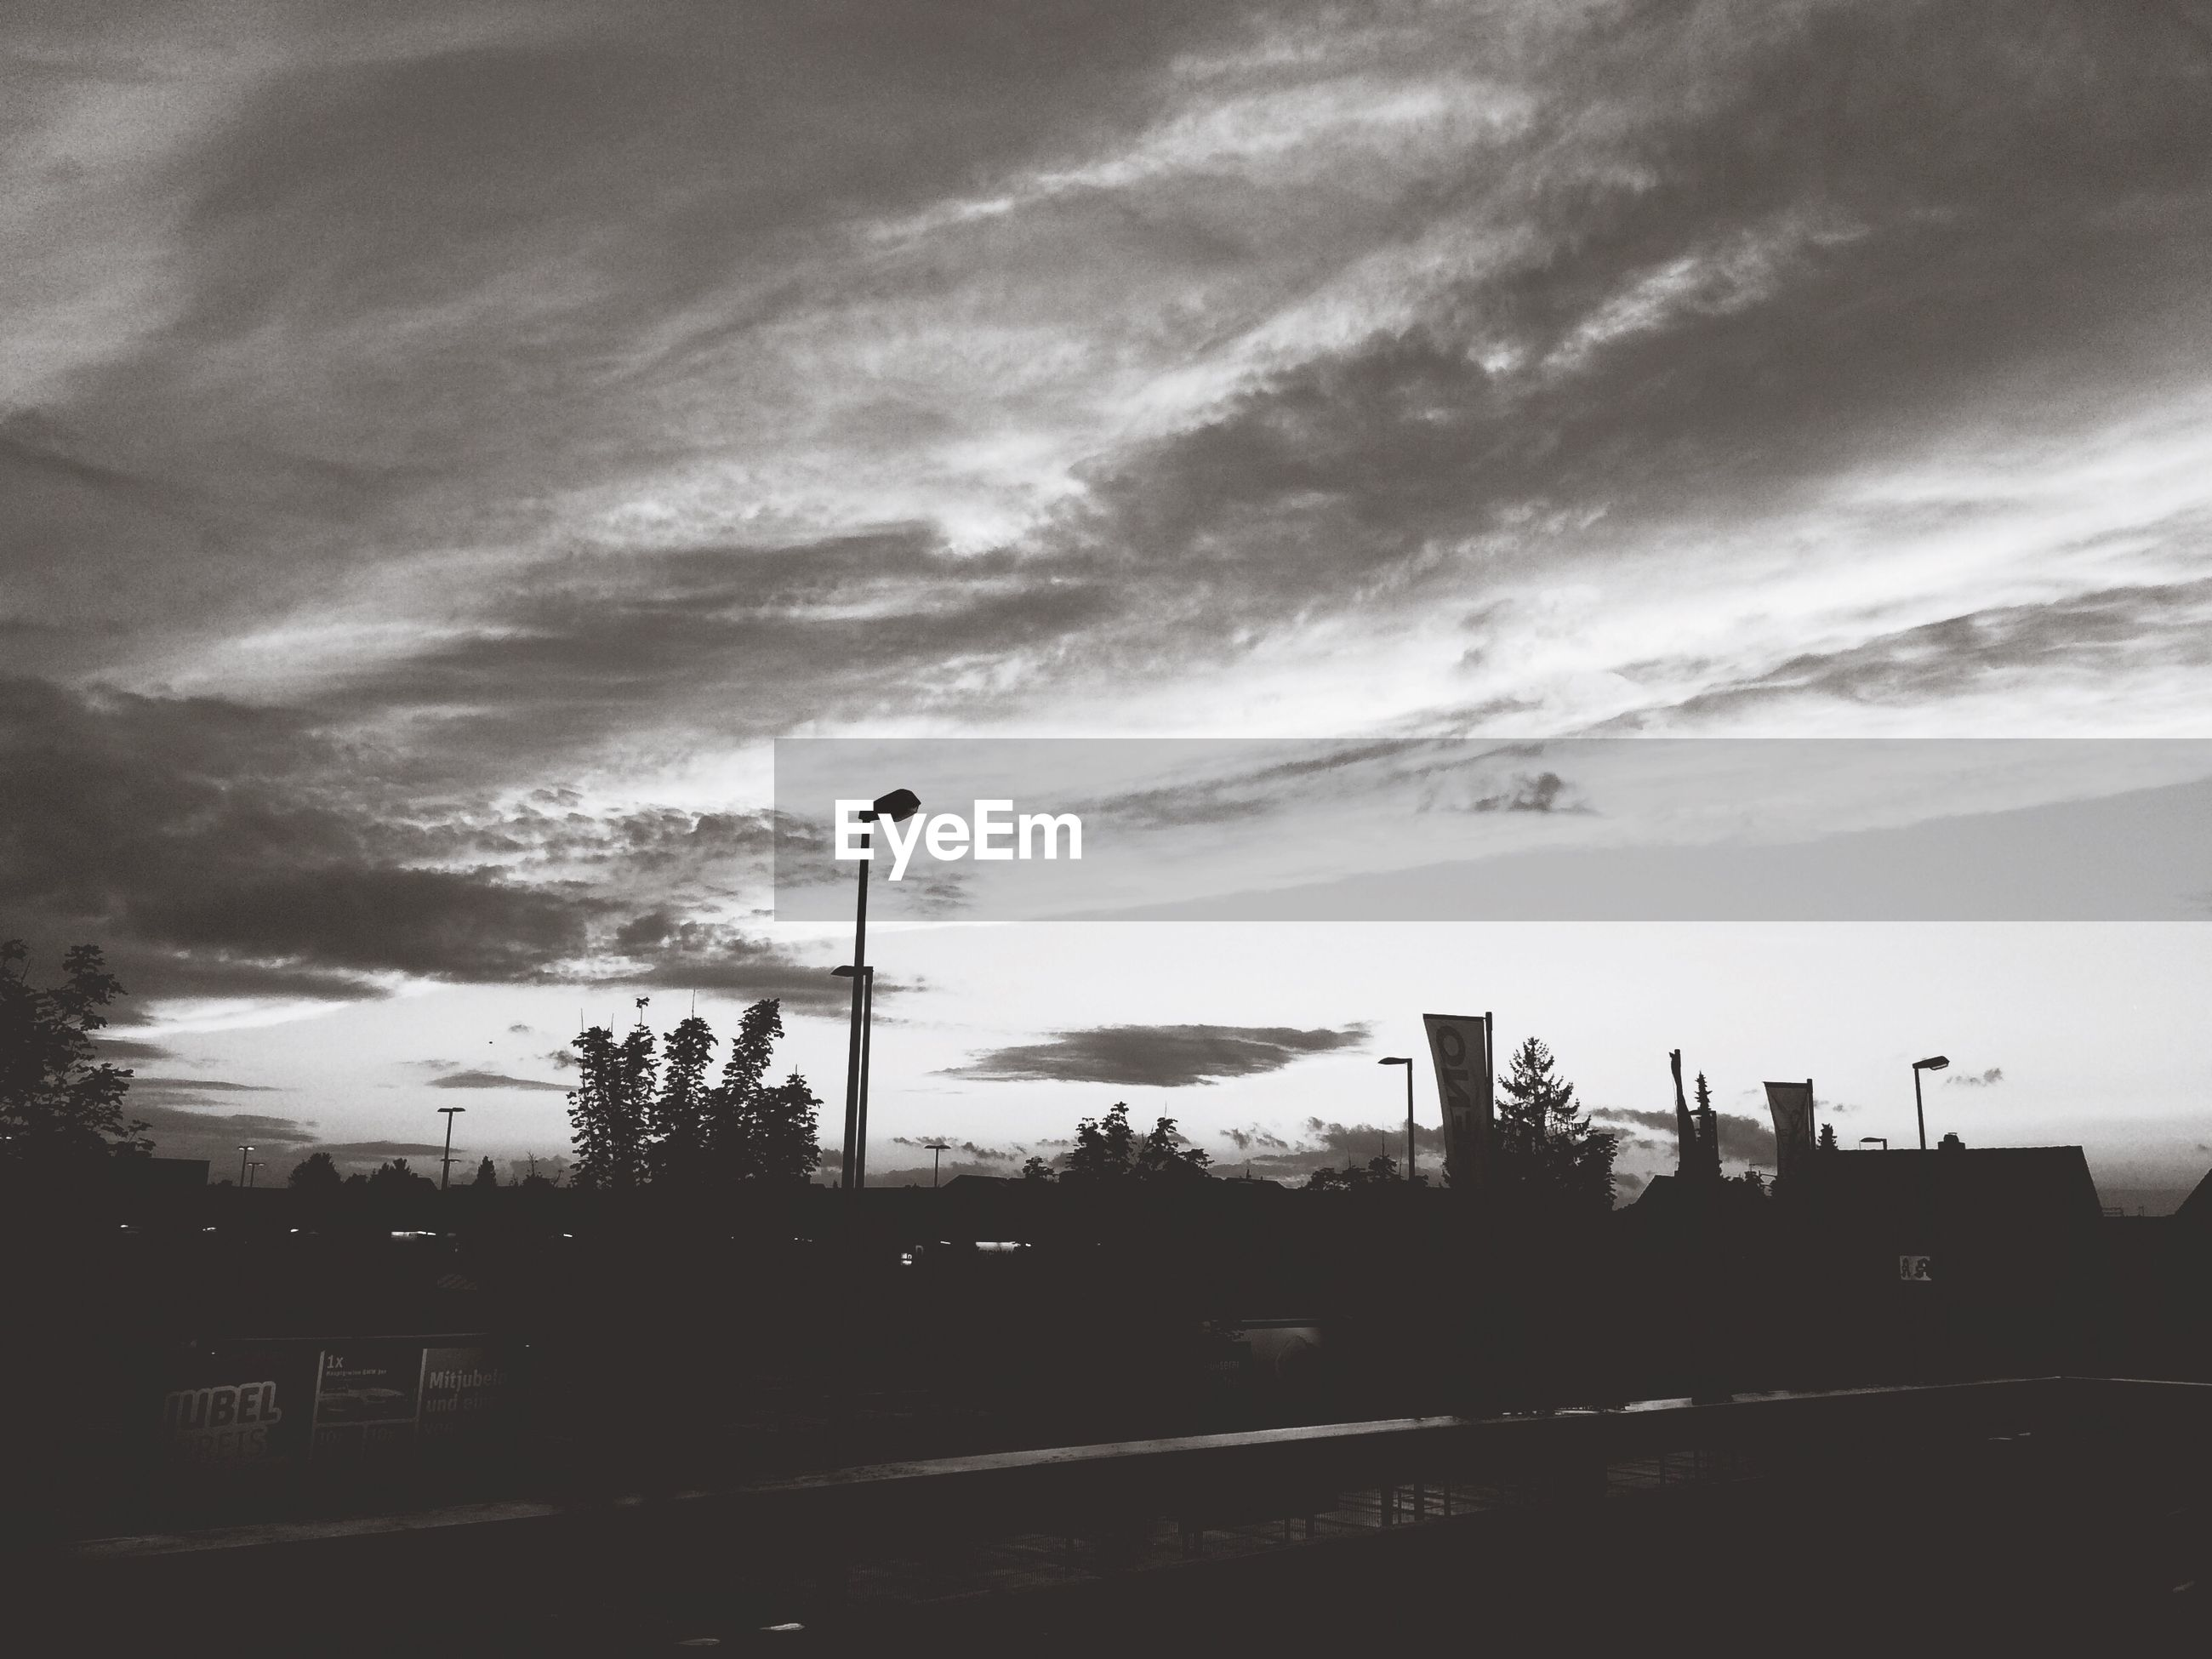 sky, cloud - sky, silhouette, cloudy, built structure, building exterior, architecture, cloud, street light, weather, dusk, overcast, sunset, road, transportation, nature, outdoors, street, no people, city